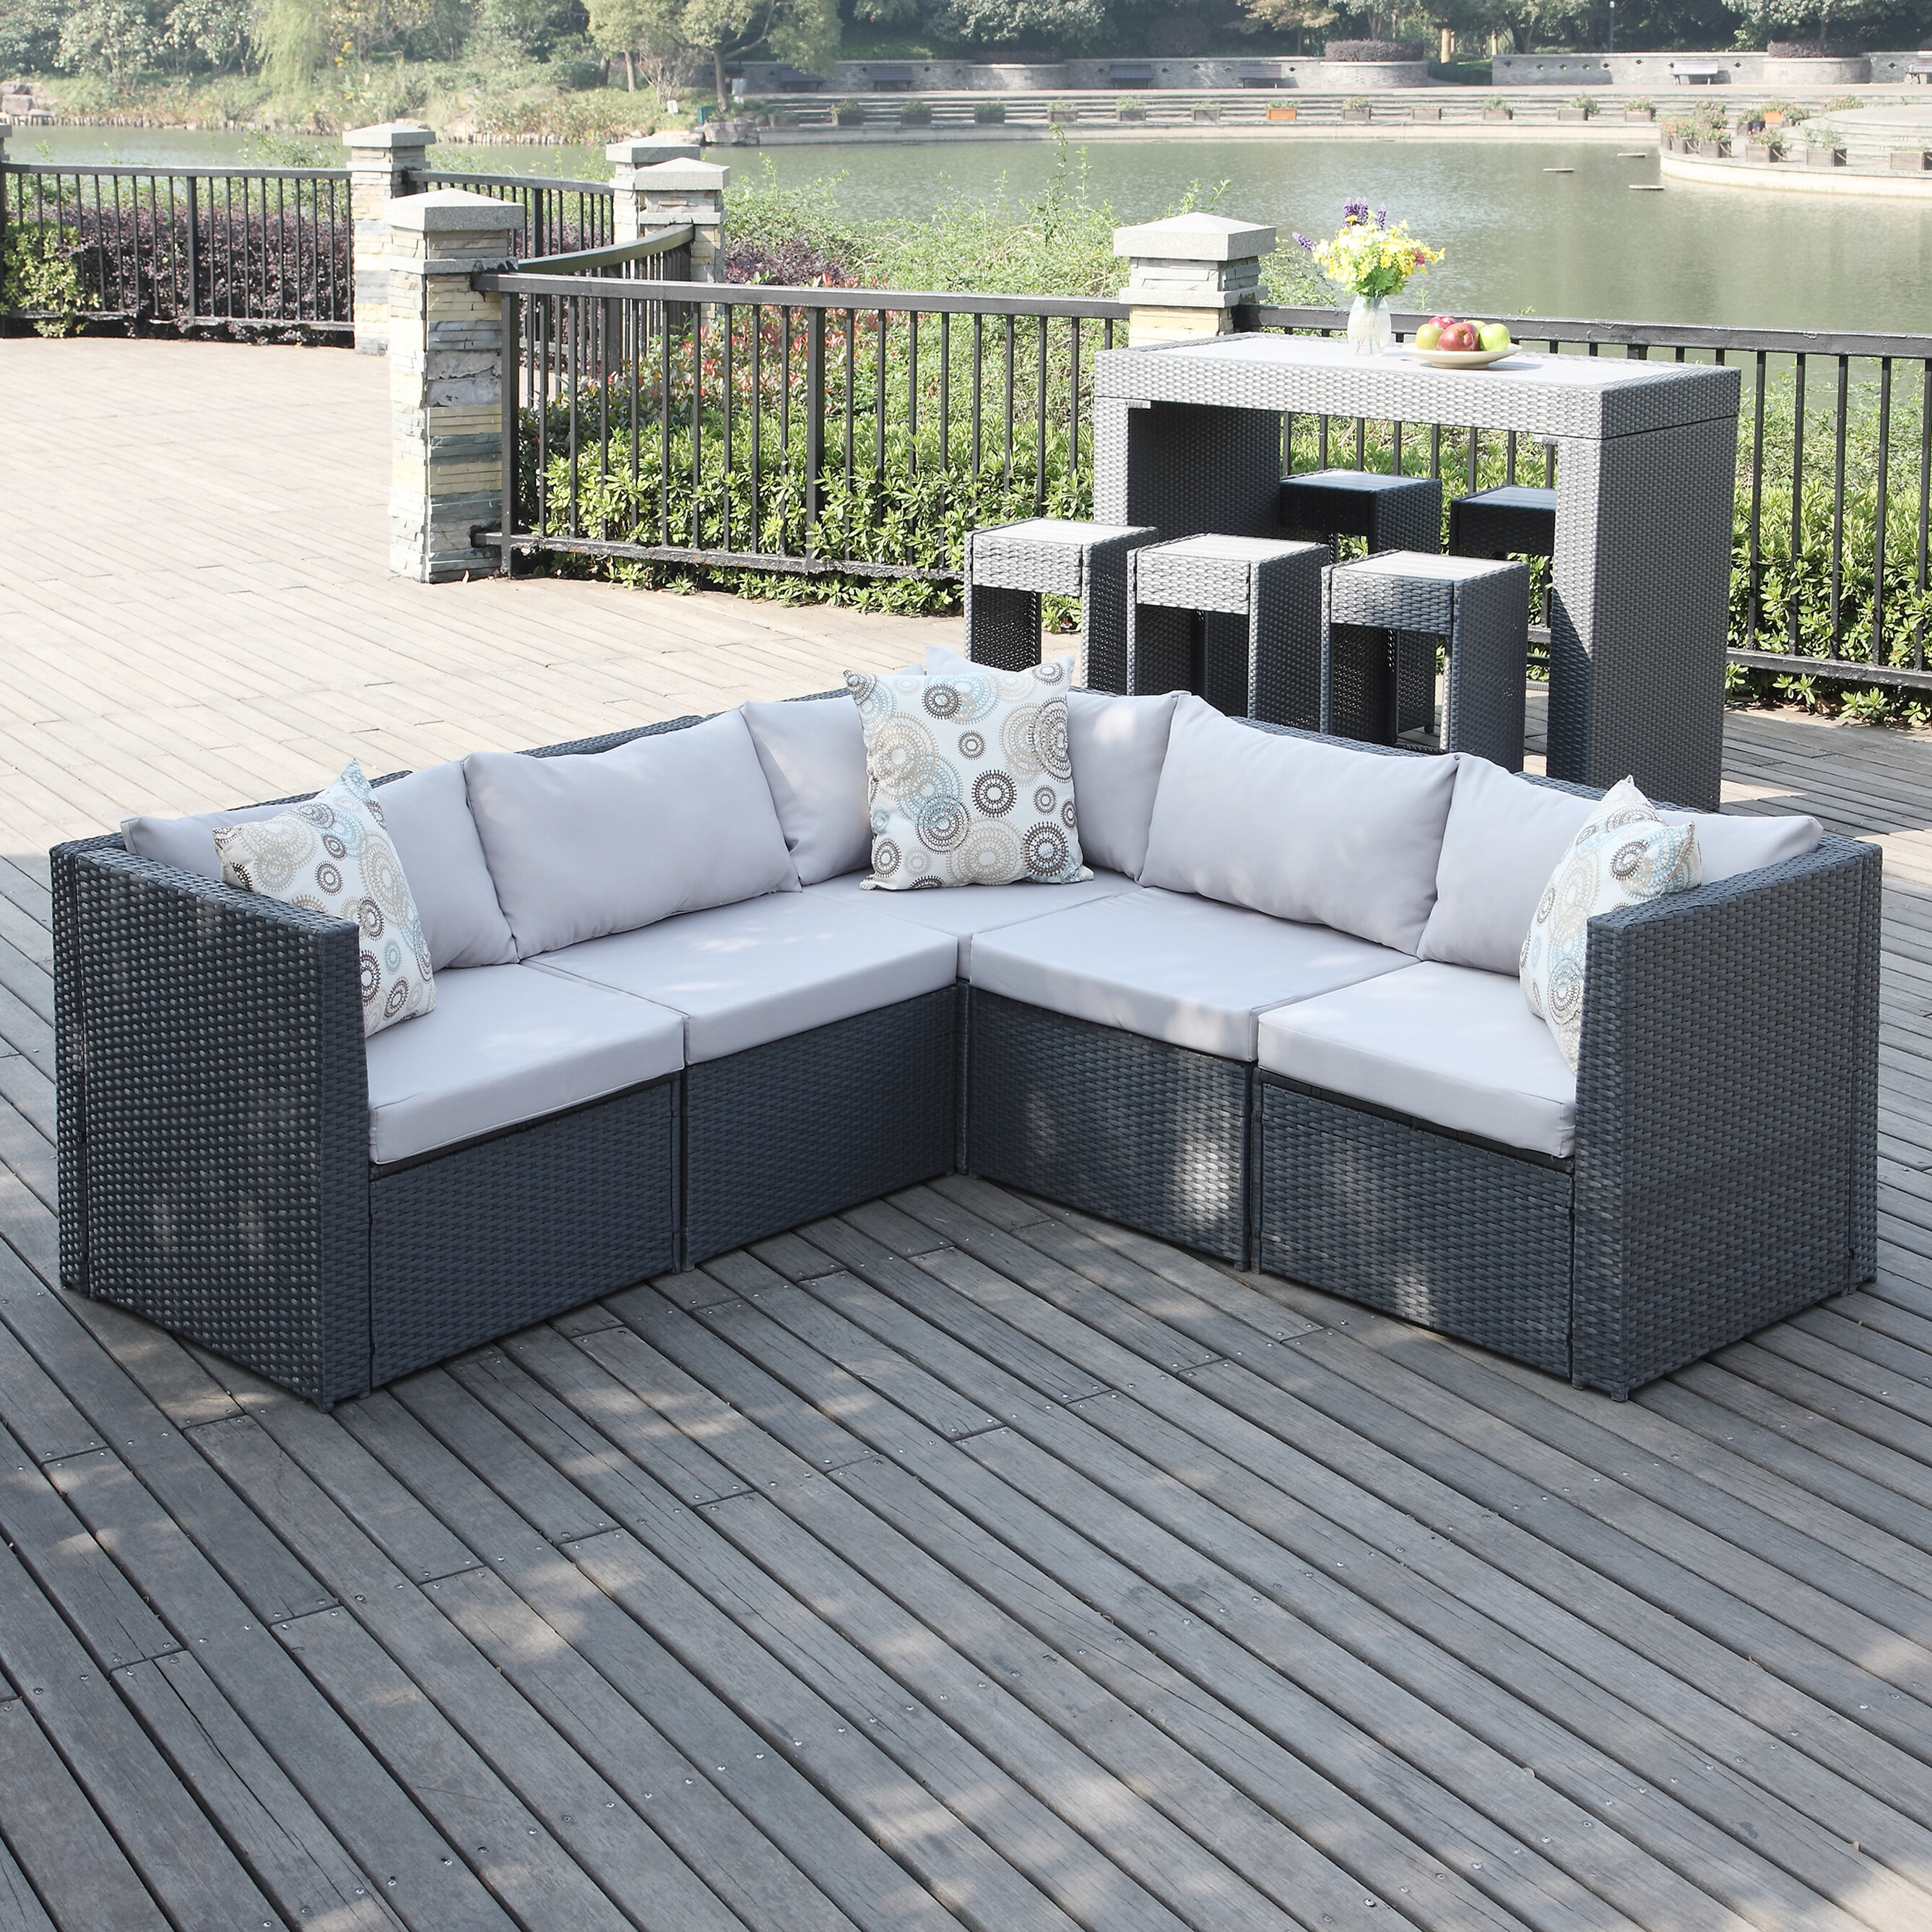 Larsen Patio Sectionals With Cushions Throughout 2019 Larsen Patio Sectional With Cushions (View 3 of 20)